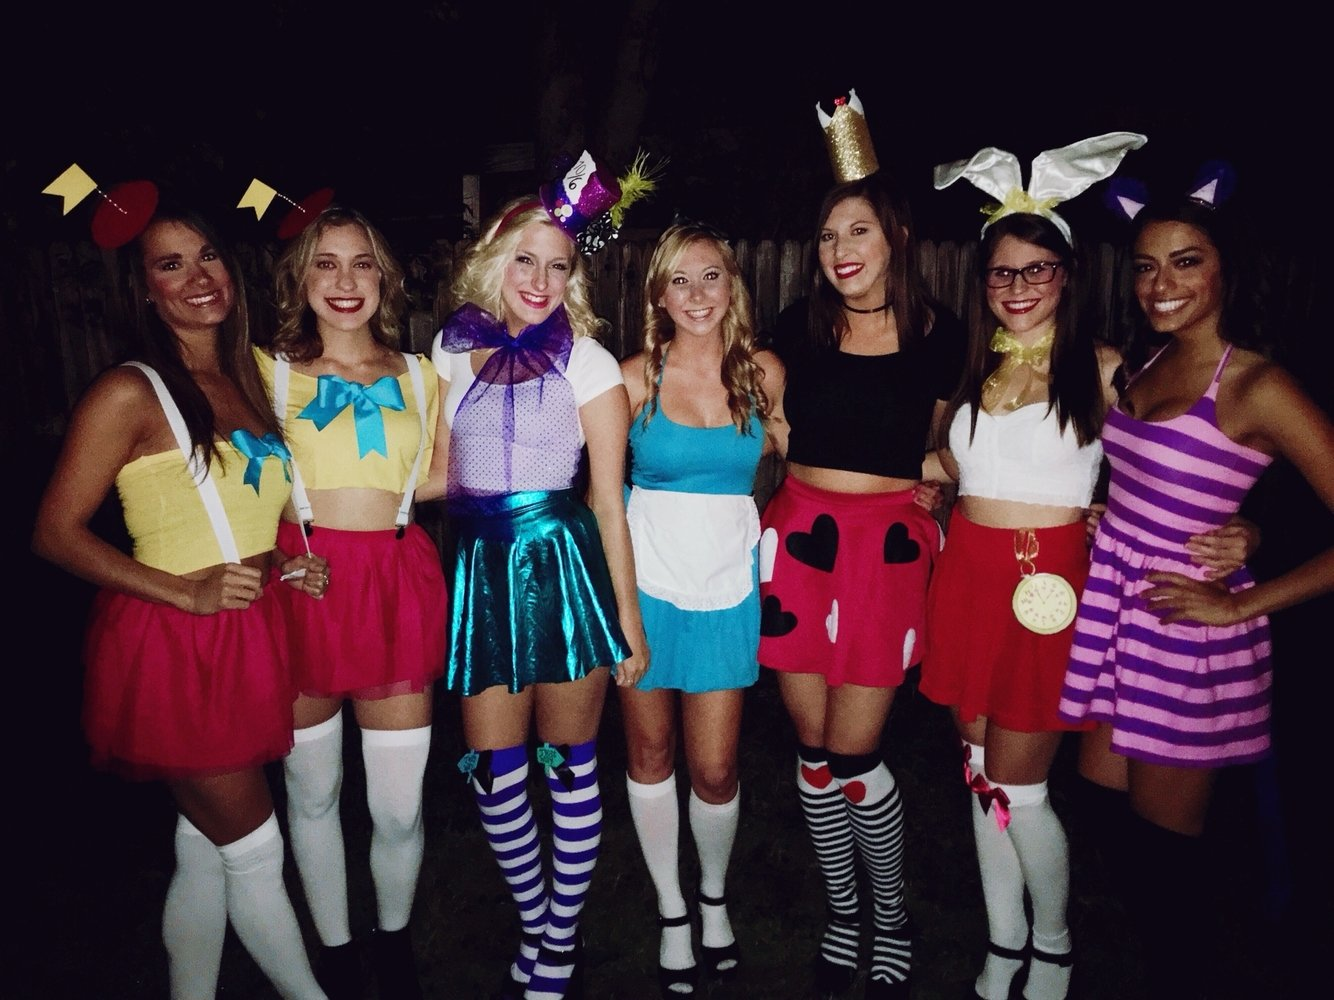 10 Fantastic Halloween Costume Ideas For Three Girls alice in wonderland group costume holiday delights pinterest